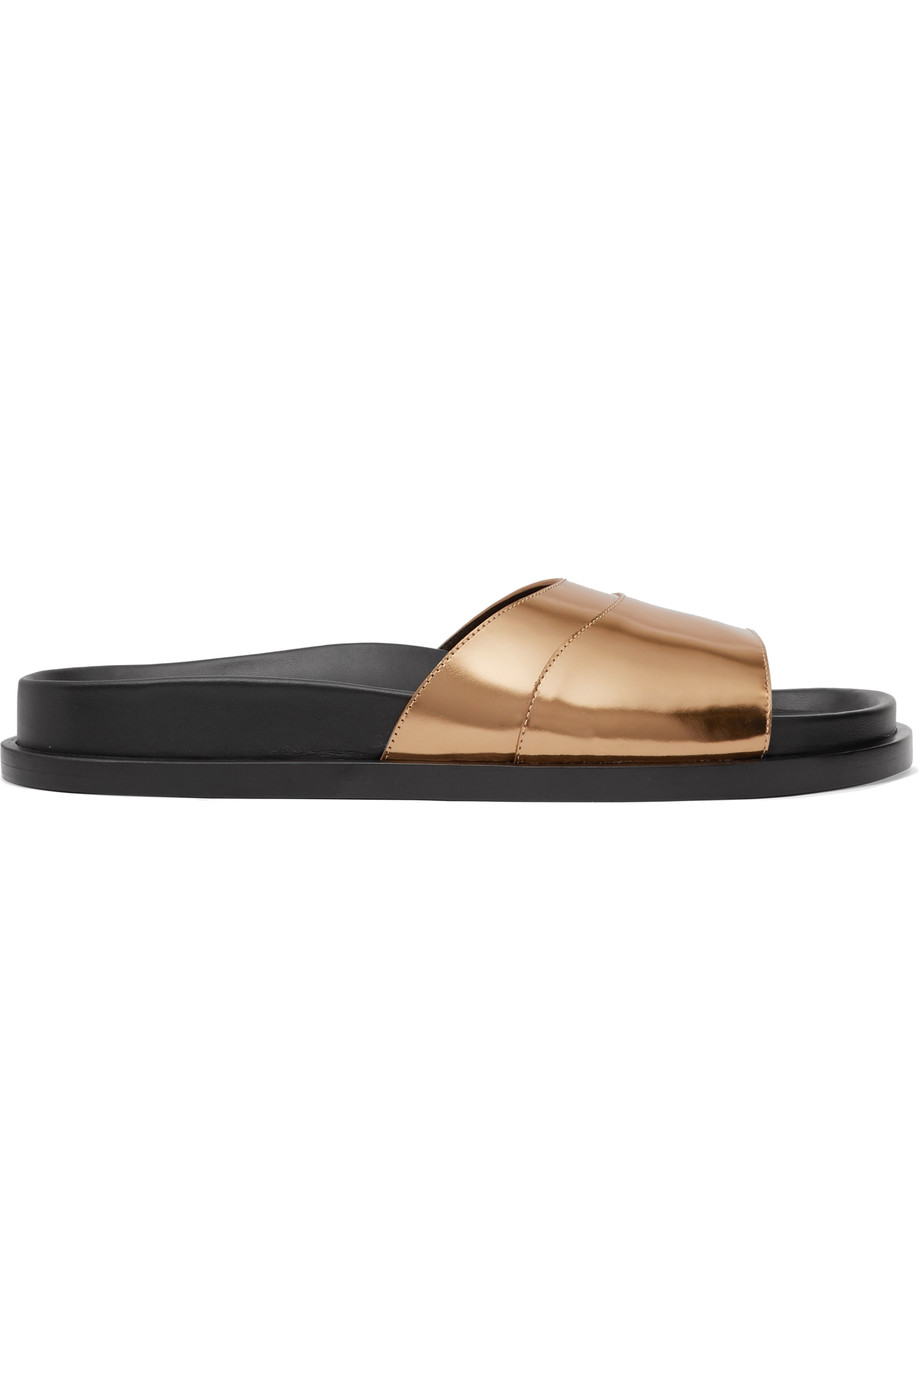 Jil Sander Mirrored-Leather Sandals